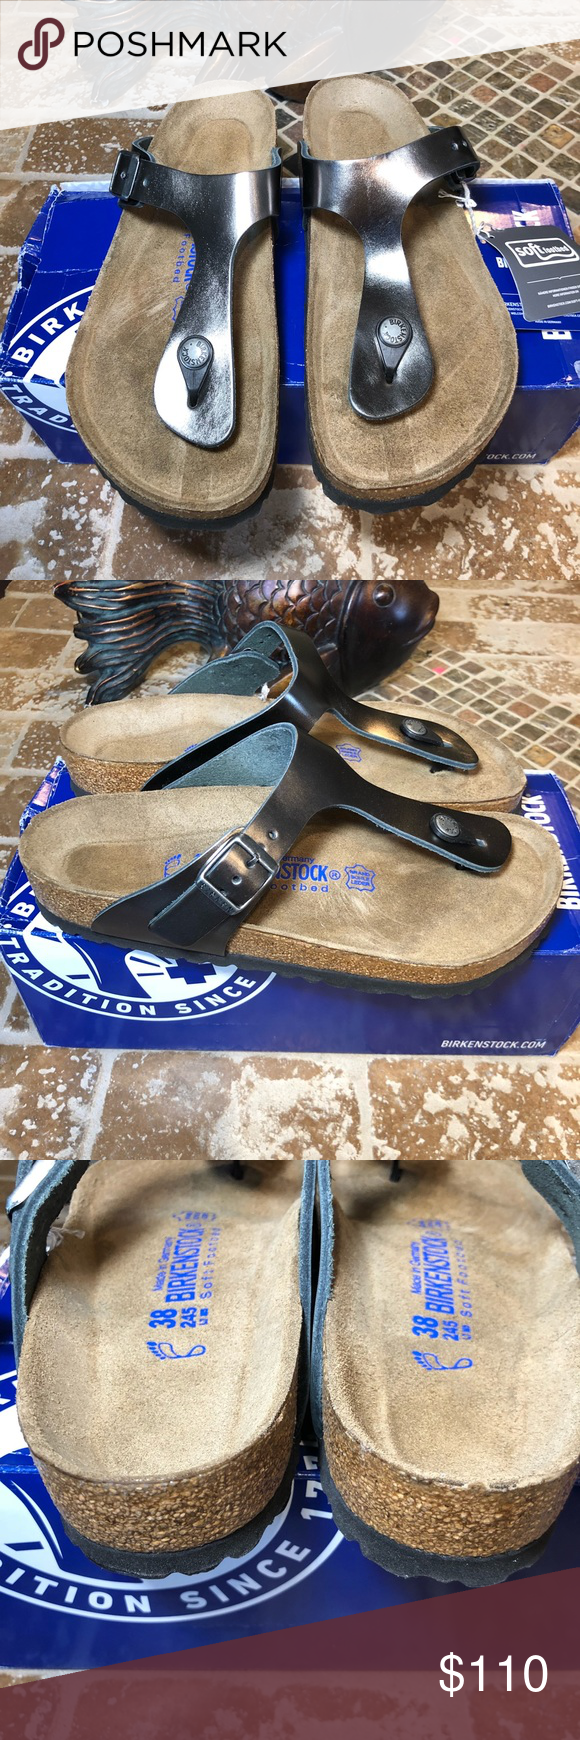 5e58e3b2b9b Birkenstock NWT Size 38 L7 Gizeh Natural Leather Soft Footbed Metallic  Anthracite. Brand new.